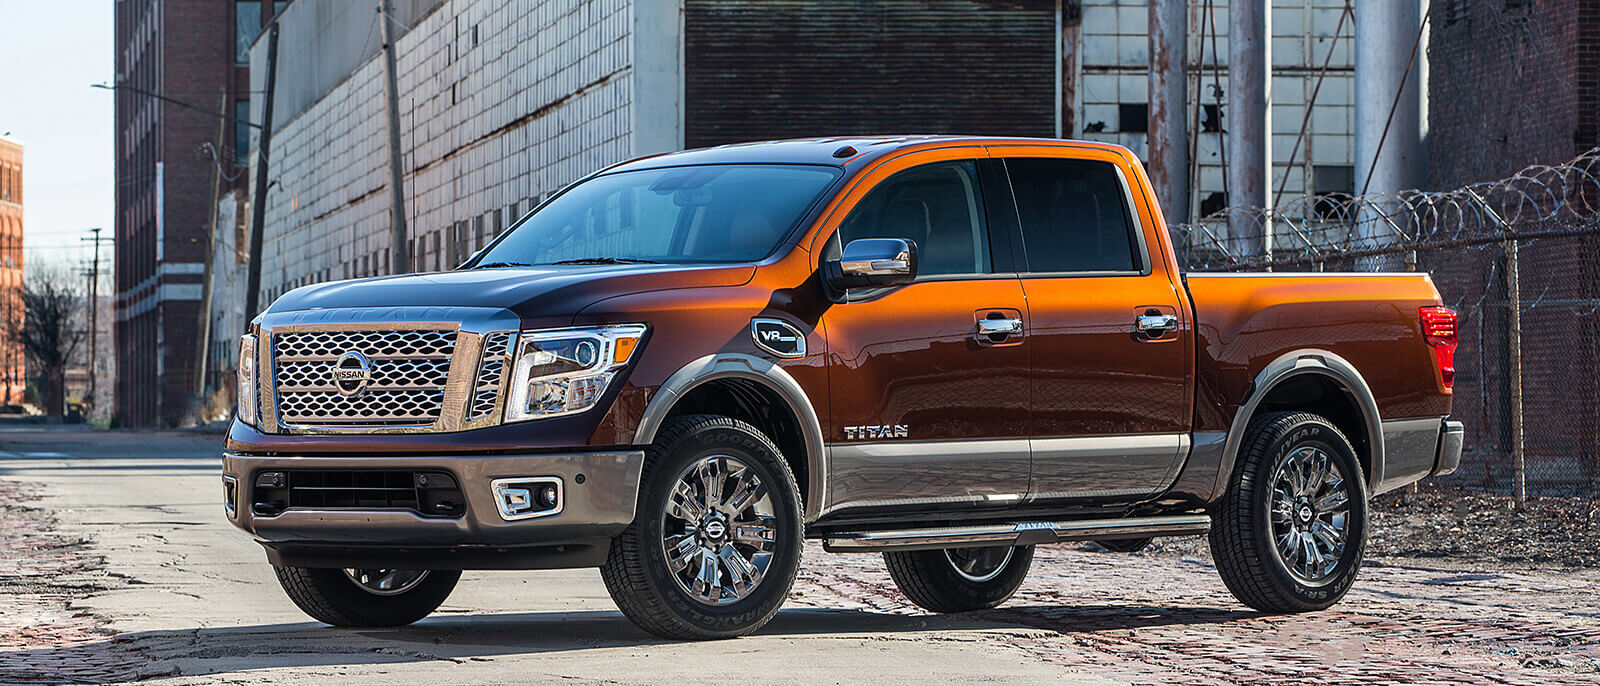 2017 Nissan Titan Orange